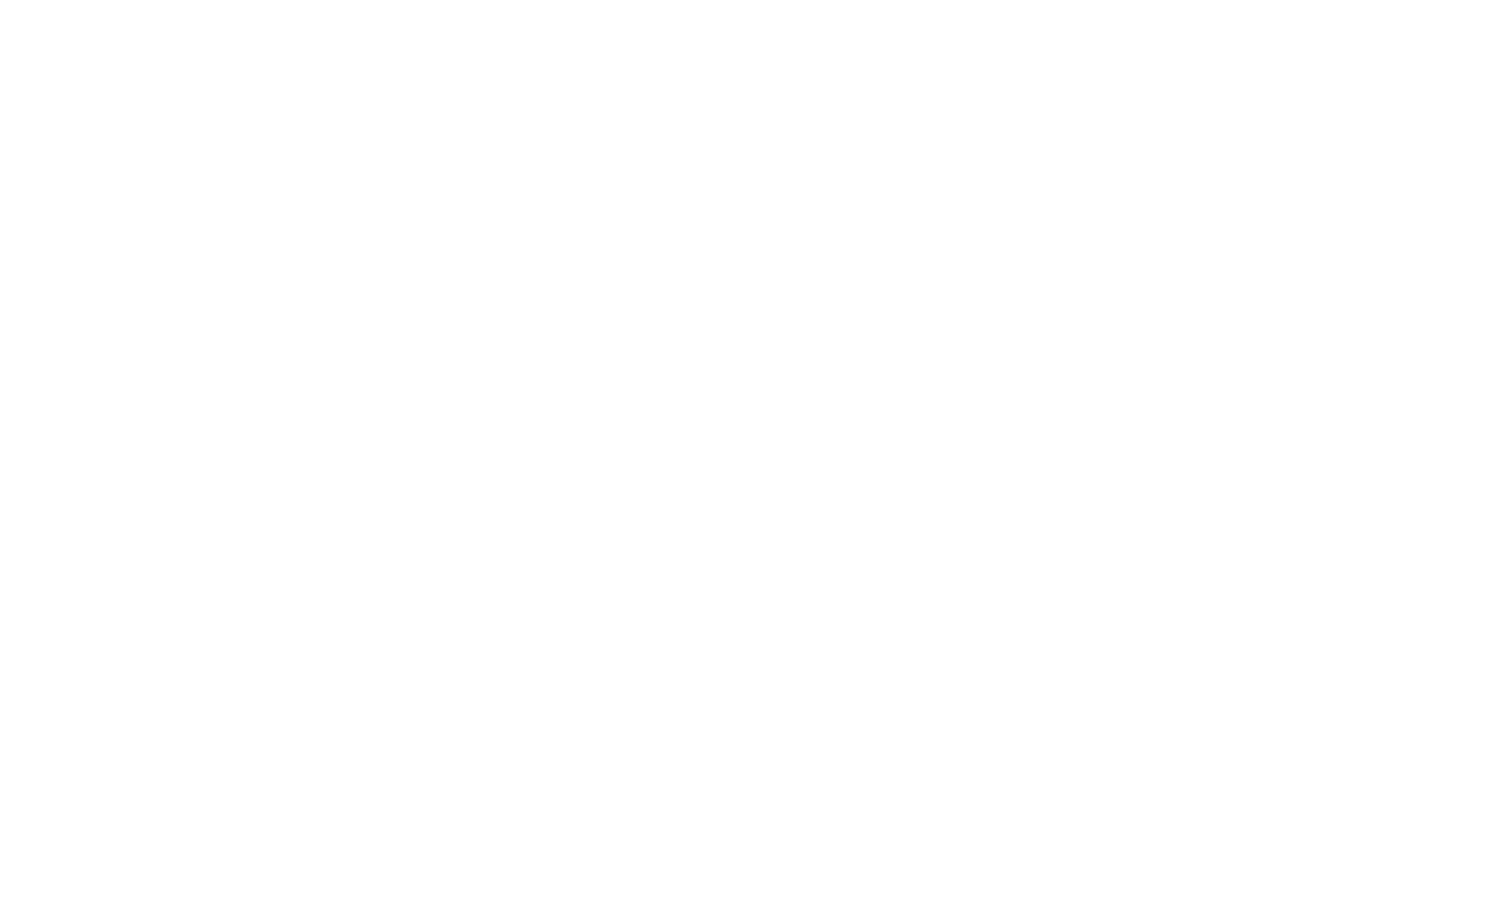 Voice Tag Gods, LLC